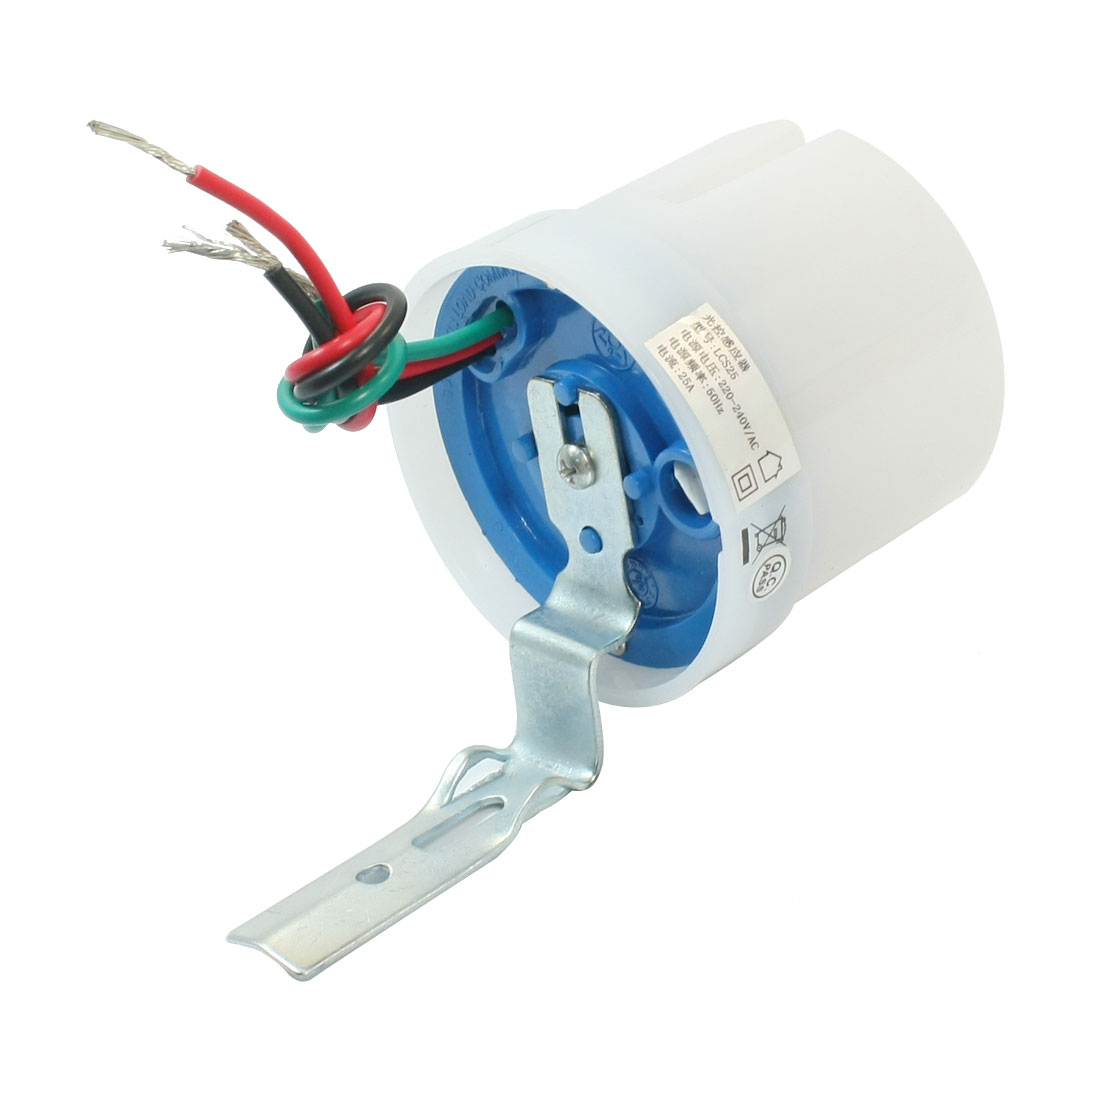 Street Lamp 3-Wire Connecting Automatic On Off Adjustable Water Proof Light Control Sensor Switch AC 220-240V 25A